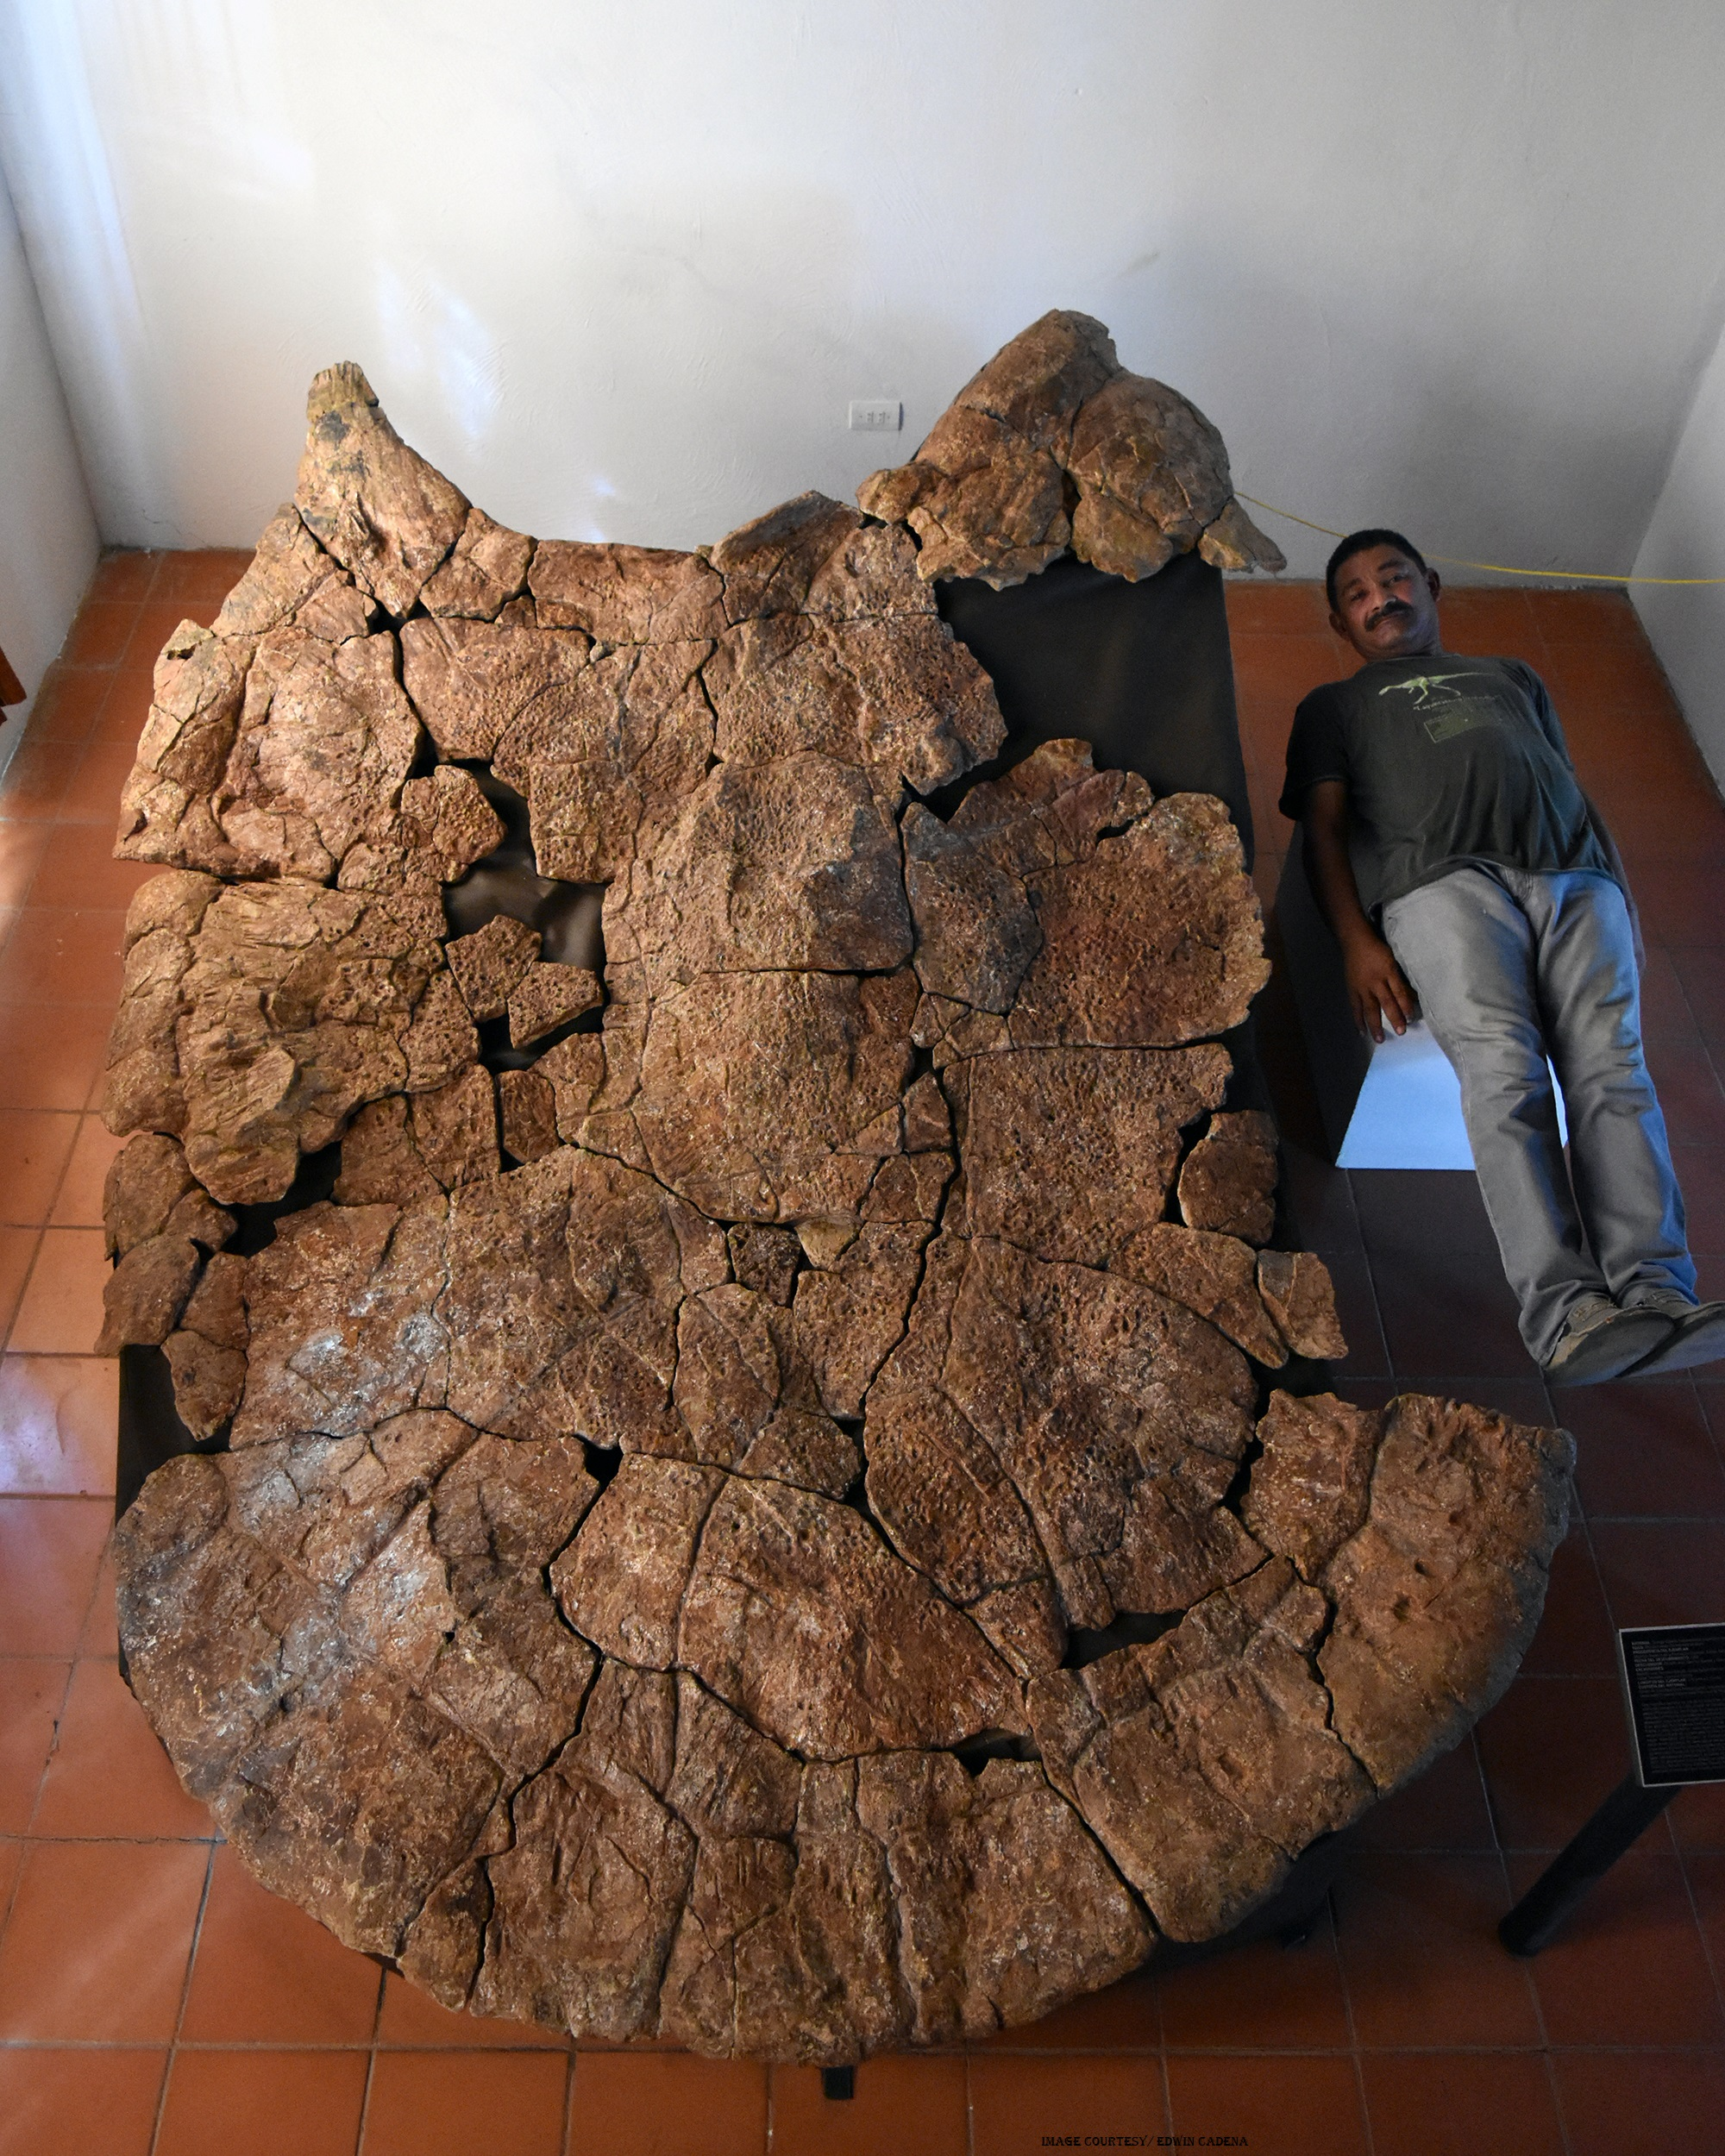 Remains of Stupendemys geographicus, the Giant Turtle, Unearthed in South America